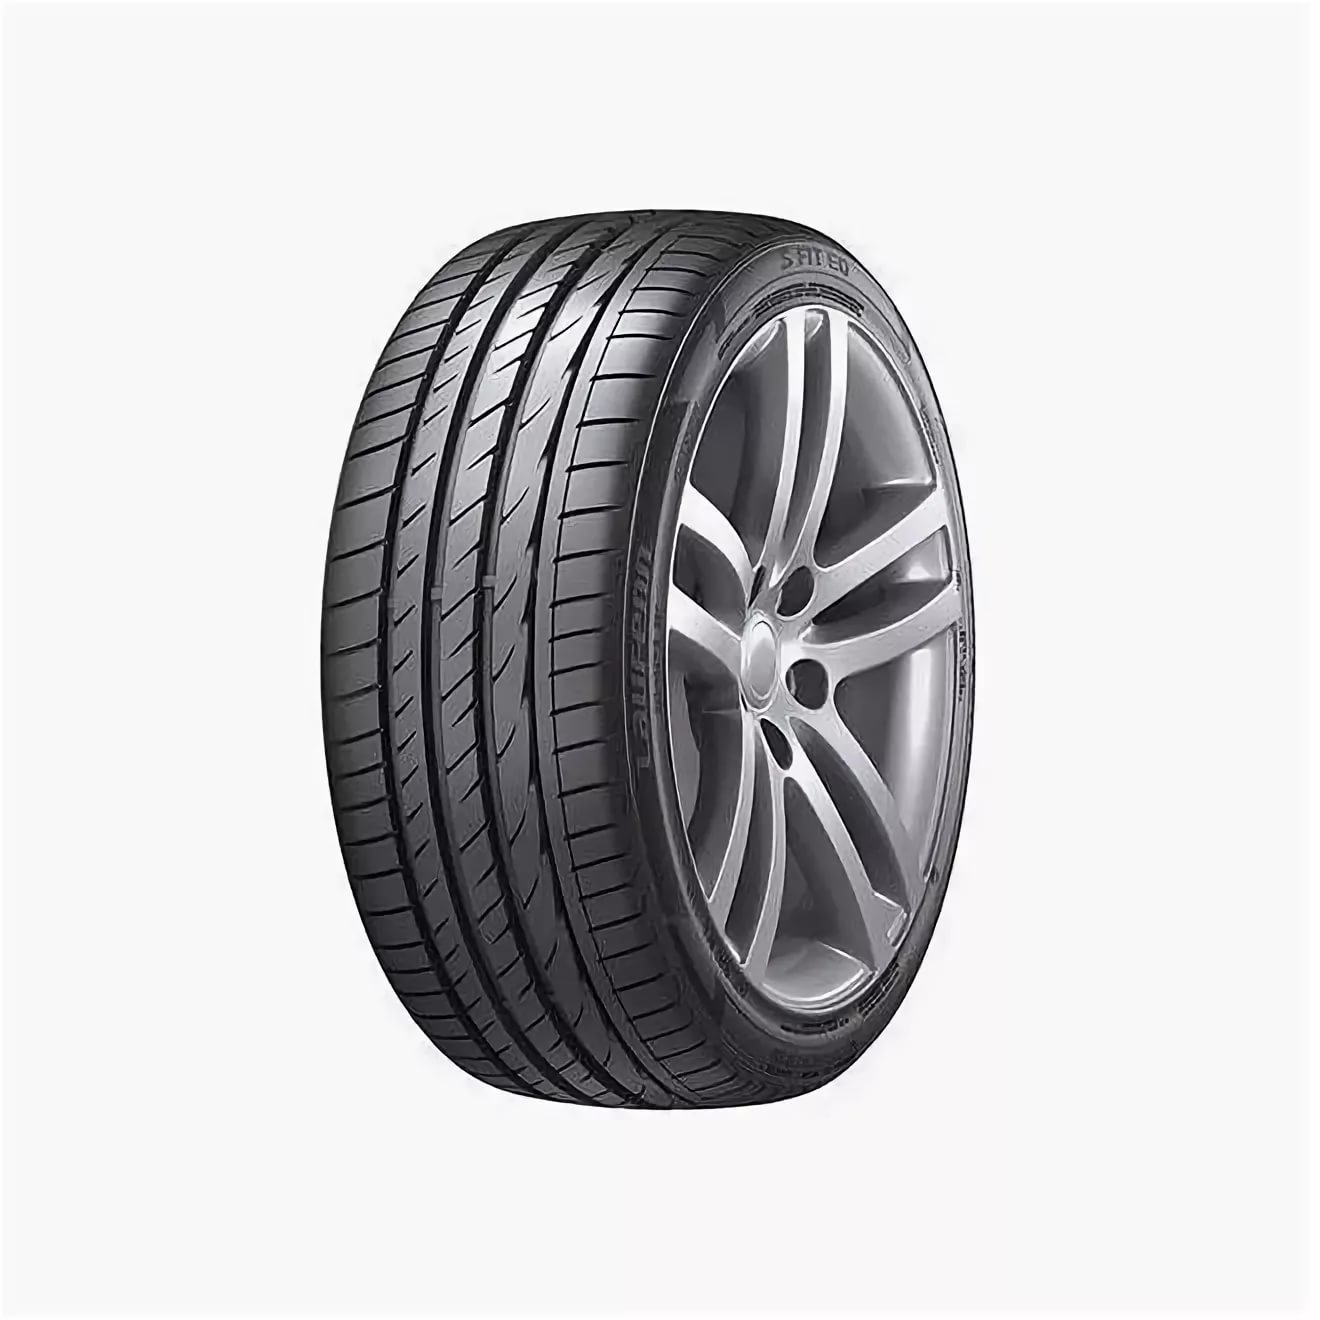 Автошина R17 235/45 Laufenn S-Fit EQ LK01 97Y XL лето